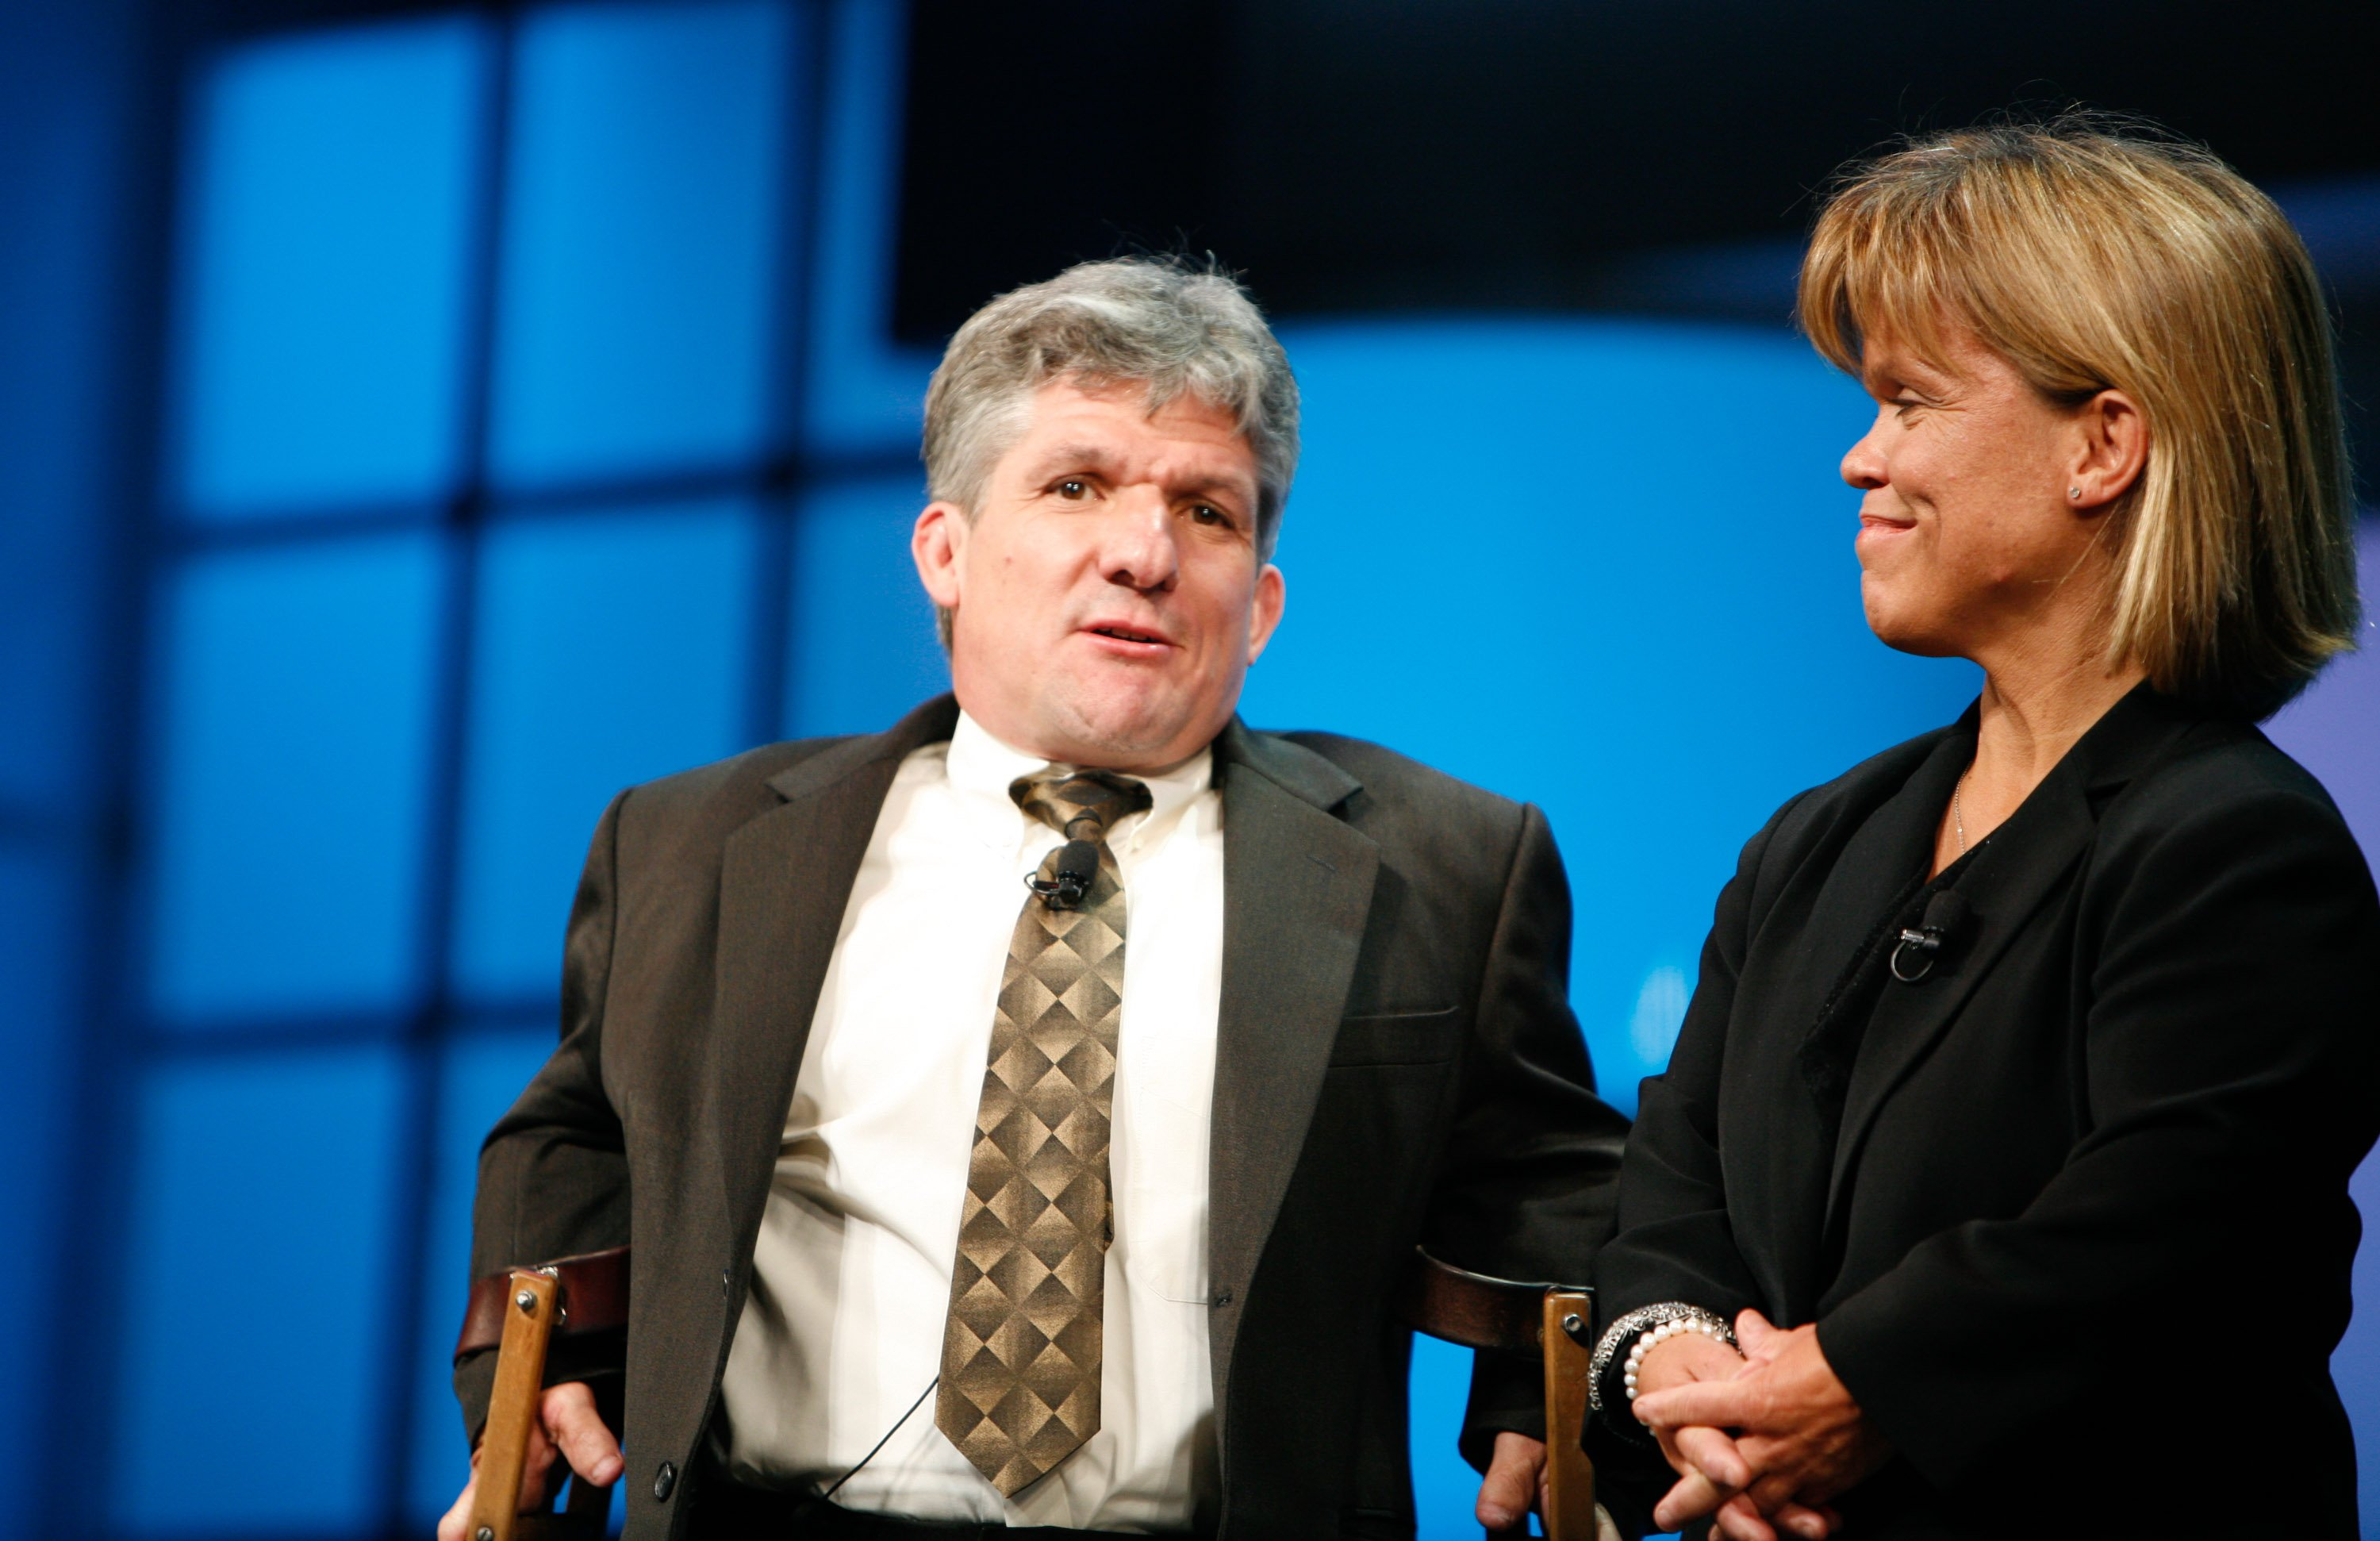 """""""Little People Big World"""" Matthew Roloff (L) and Amy Roloff (R) speak at the Discovery Upfront event at Jazz at Lincoln Center on April 23, 2008